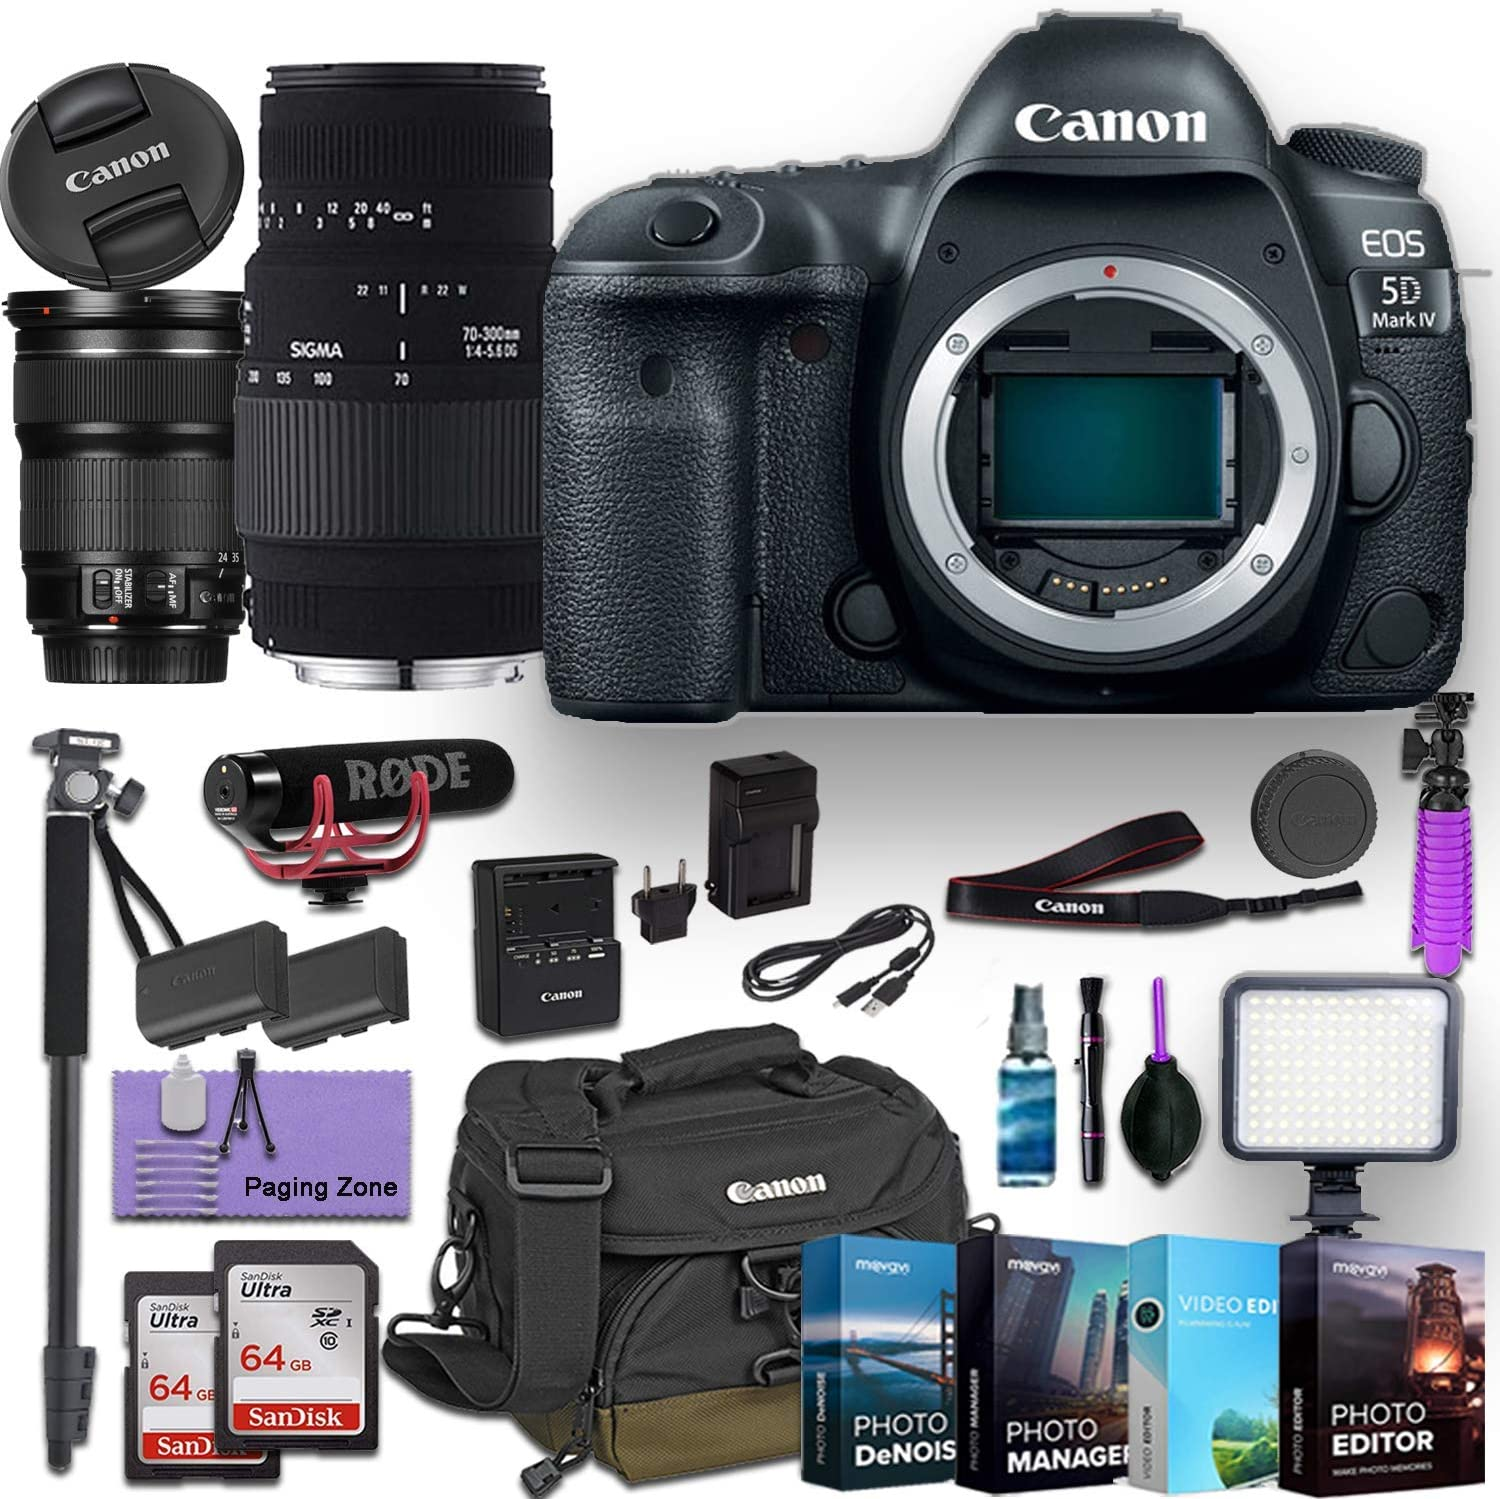 Canon EOS 5D Mark IV DSLR Camera w/EF 24-105mm f/3.5-5.6 is STM Lens and Sigma 70-300mm f/4-5.6 DG Macro Lens Bundled with Deluxe Accessories (Rode Microphone, 4-Pack Photo Editing Software and More)